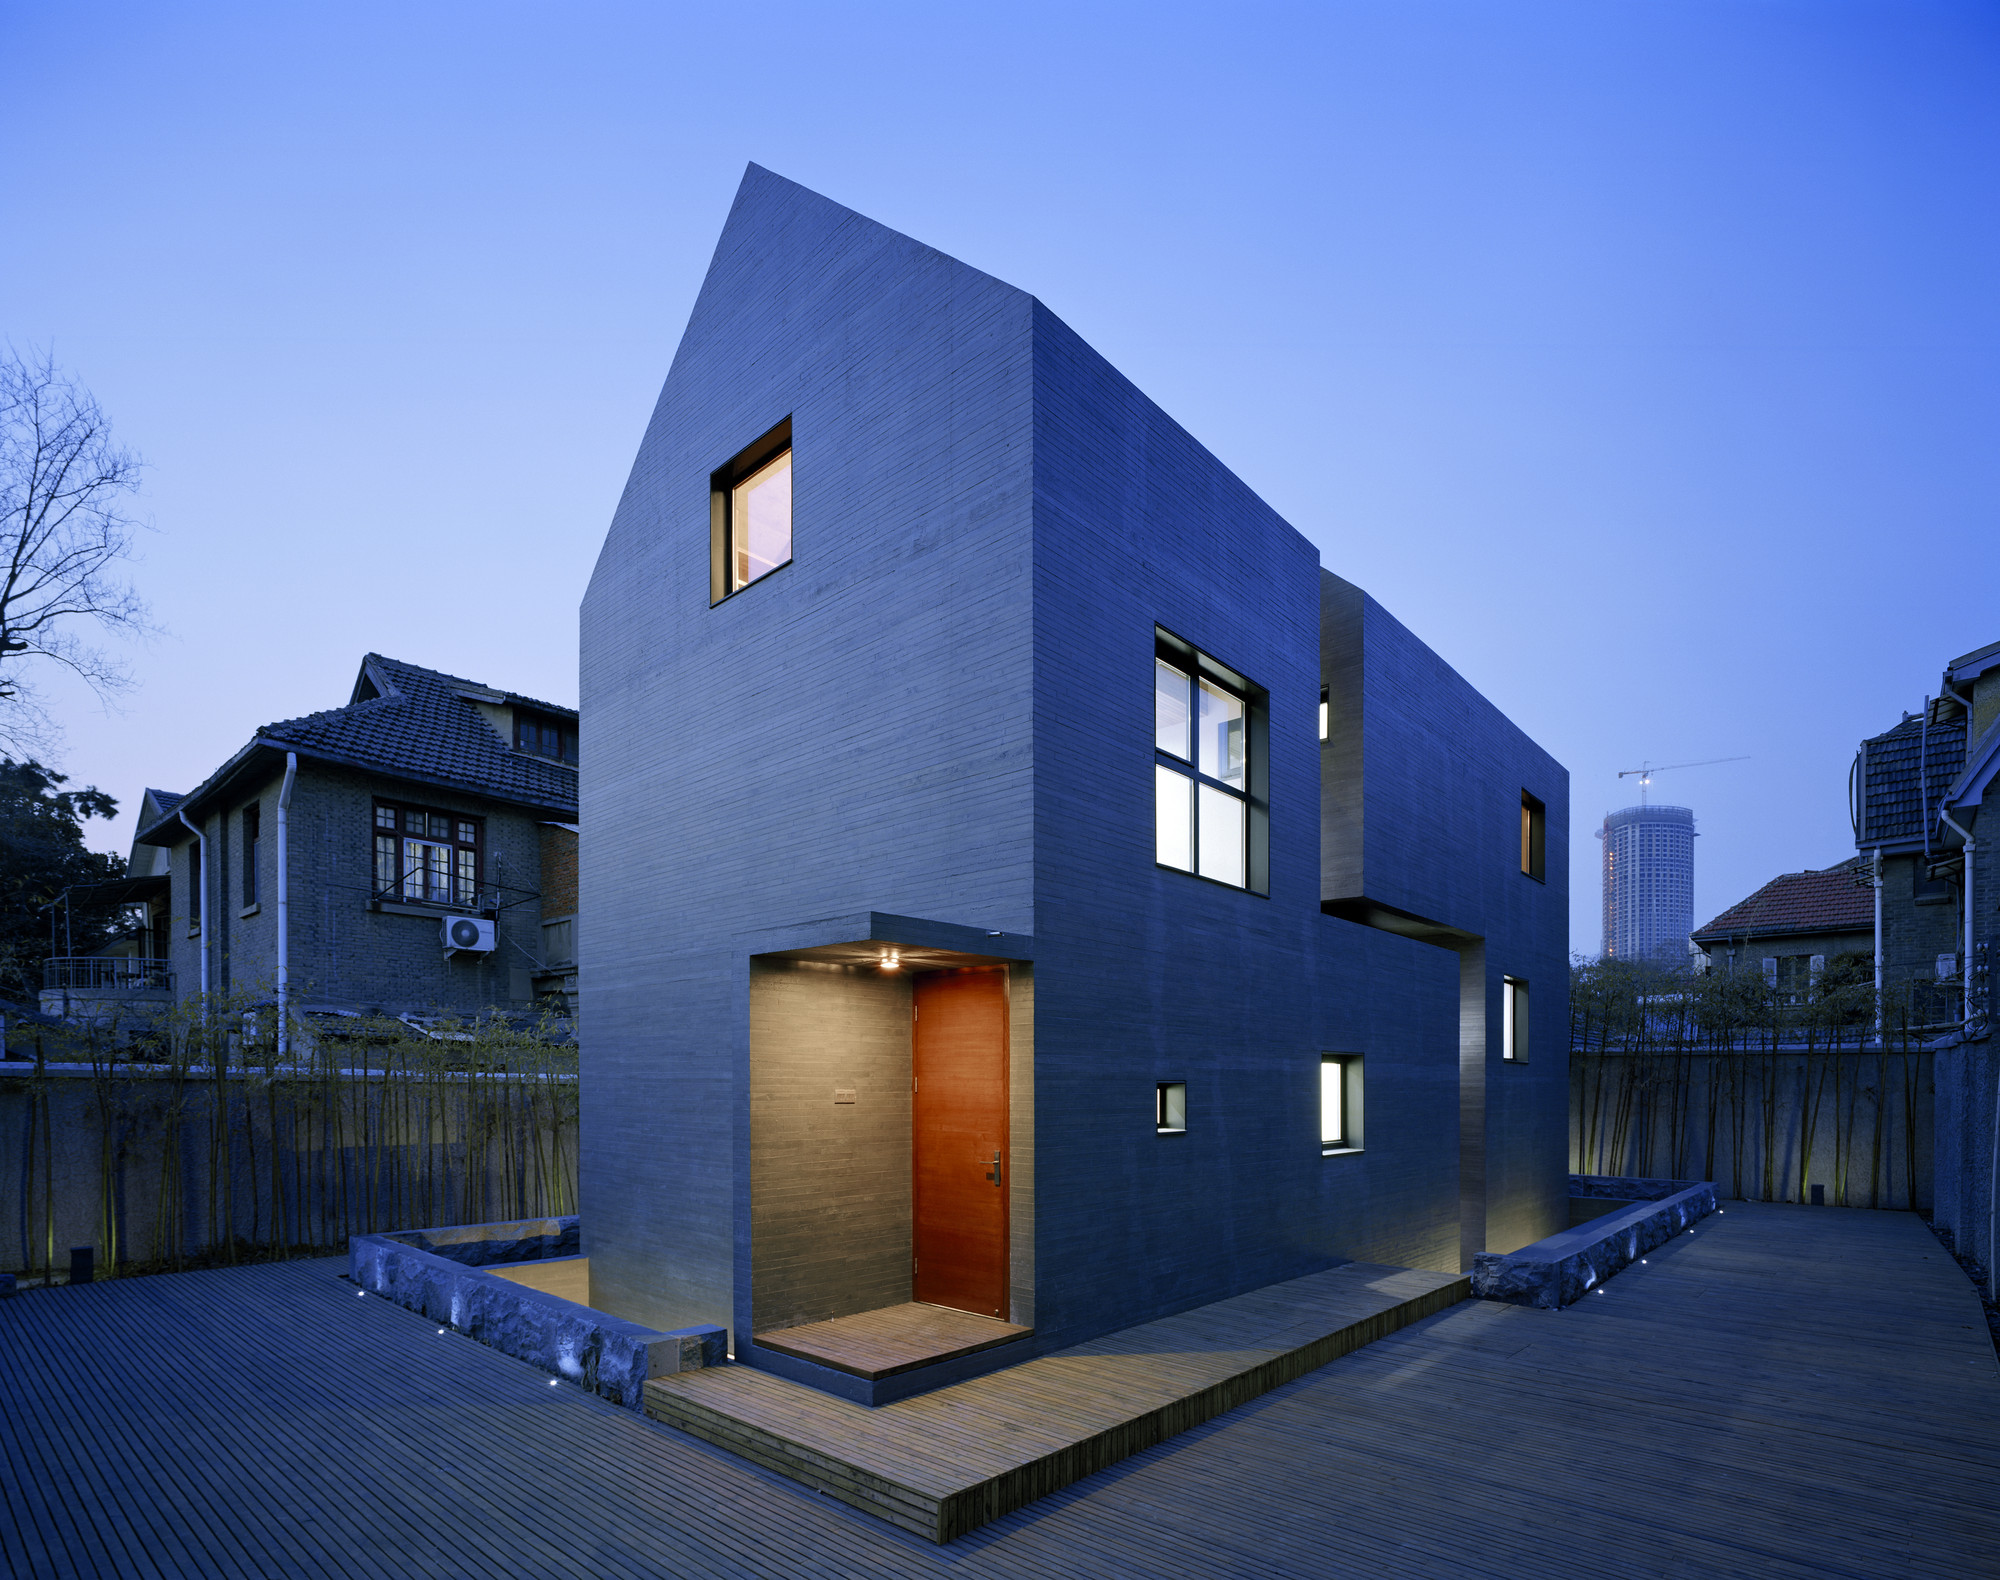 Slit House Azl Architects Concrete : An interview with zhang lei azl architects archdaily